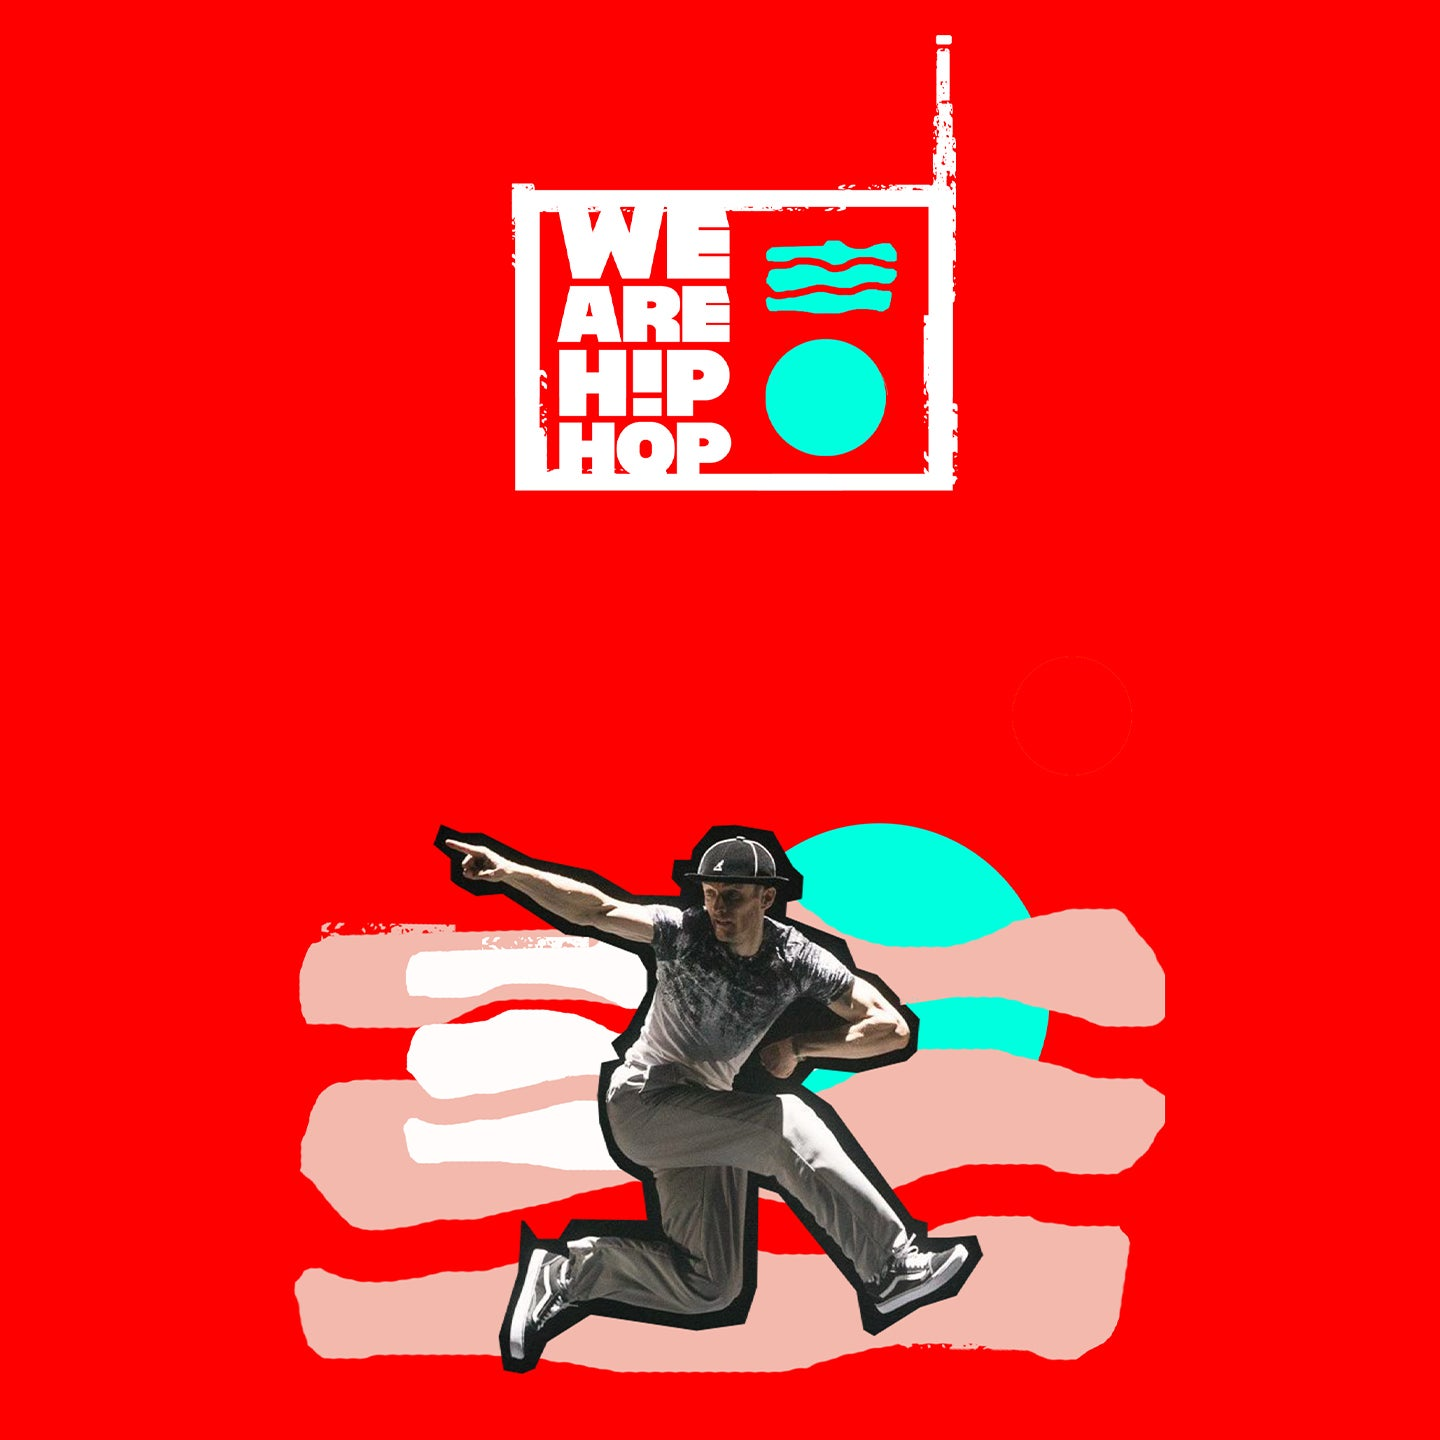 We Are Hip Hop: The Reveal